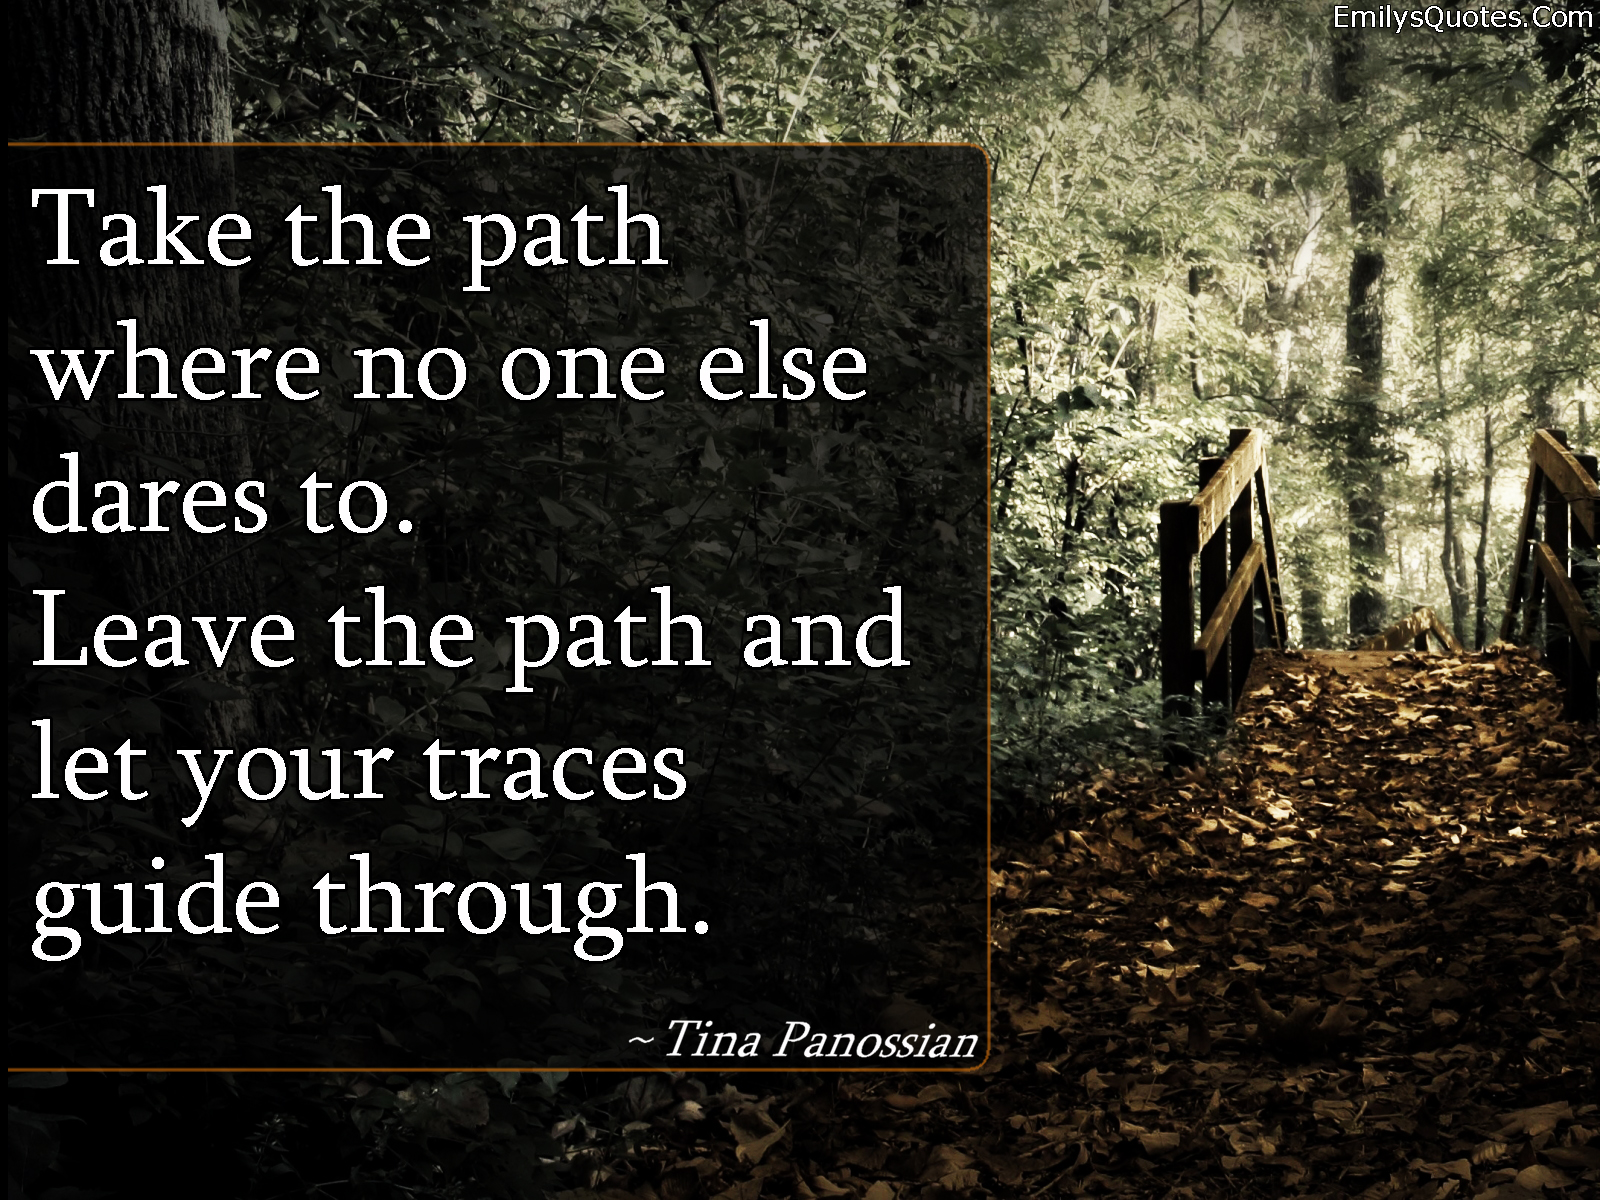 EmilysQuotes.Com - path, inspirational, dreams, life, wisdom, Tina Panossian, encouraging